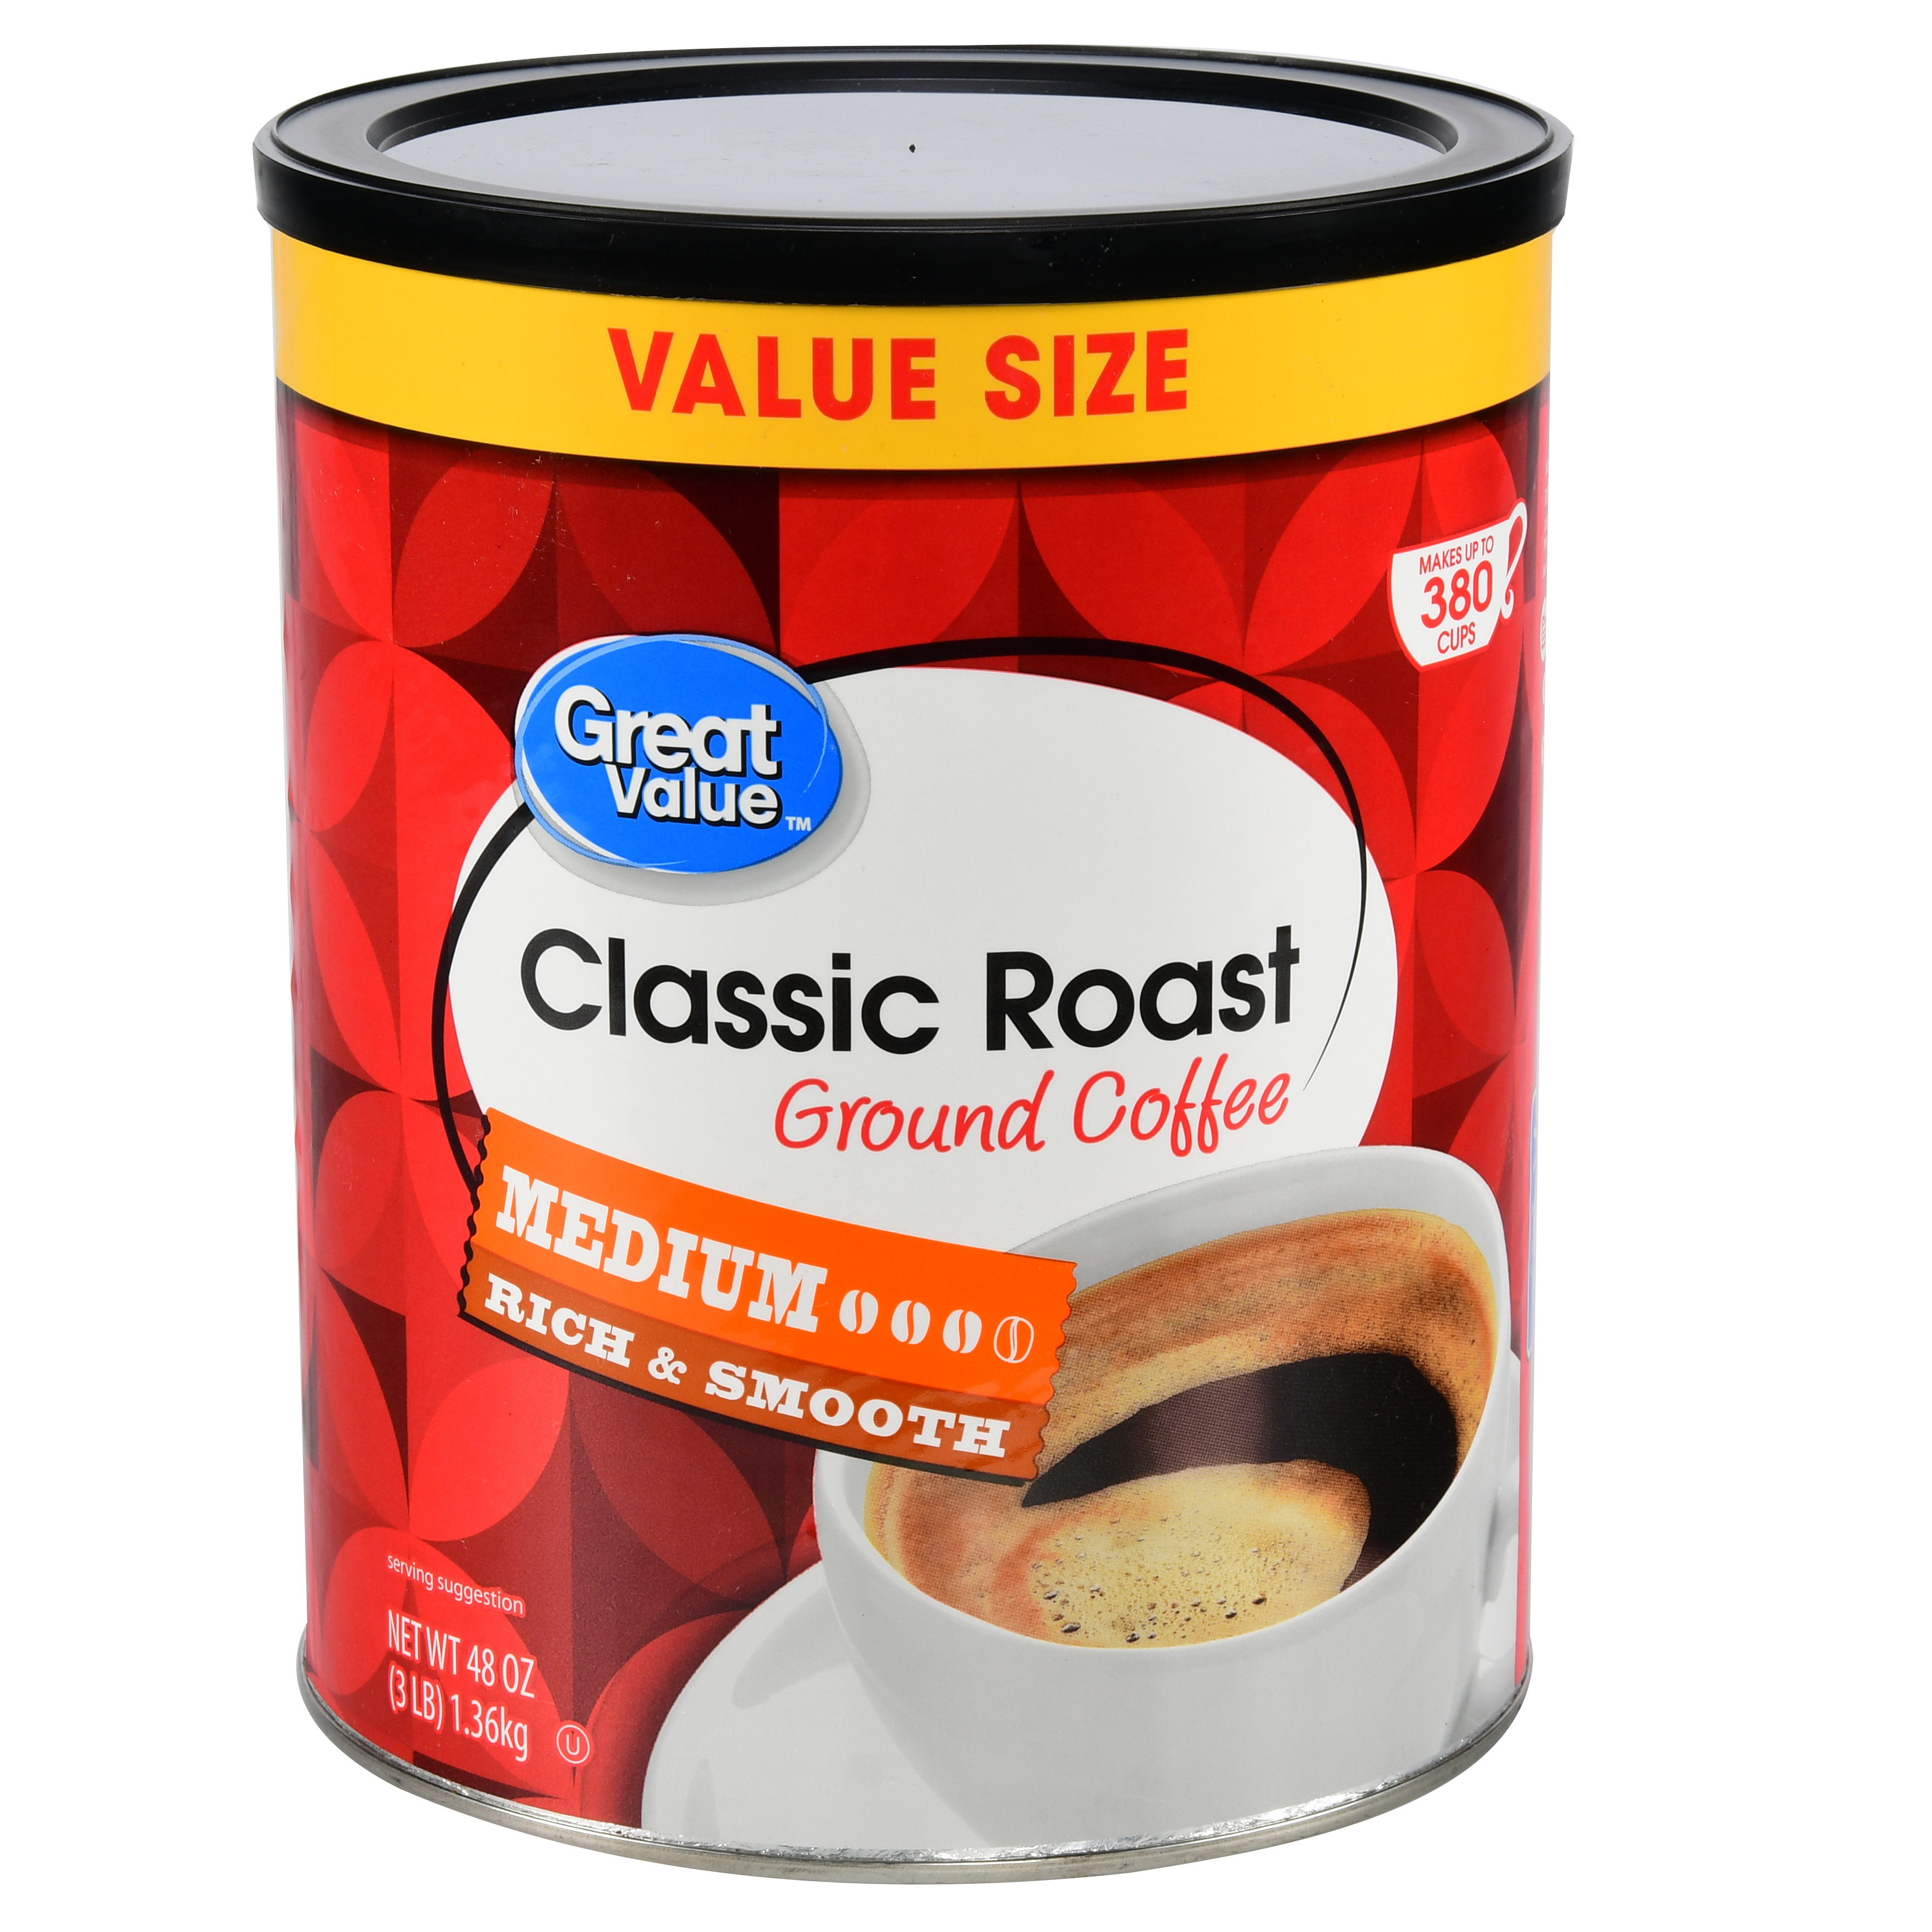 Great Value Classic Roast Ground Coffee, Medium Roast, 48 oz